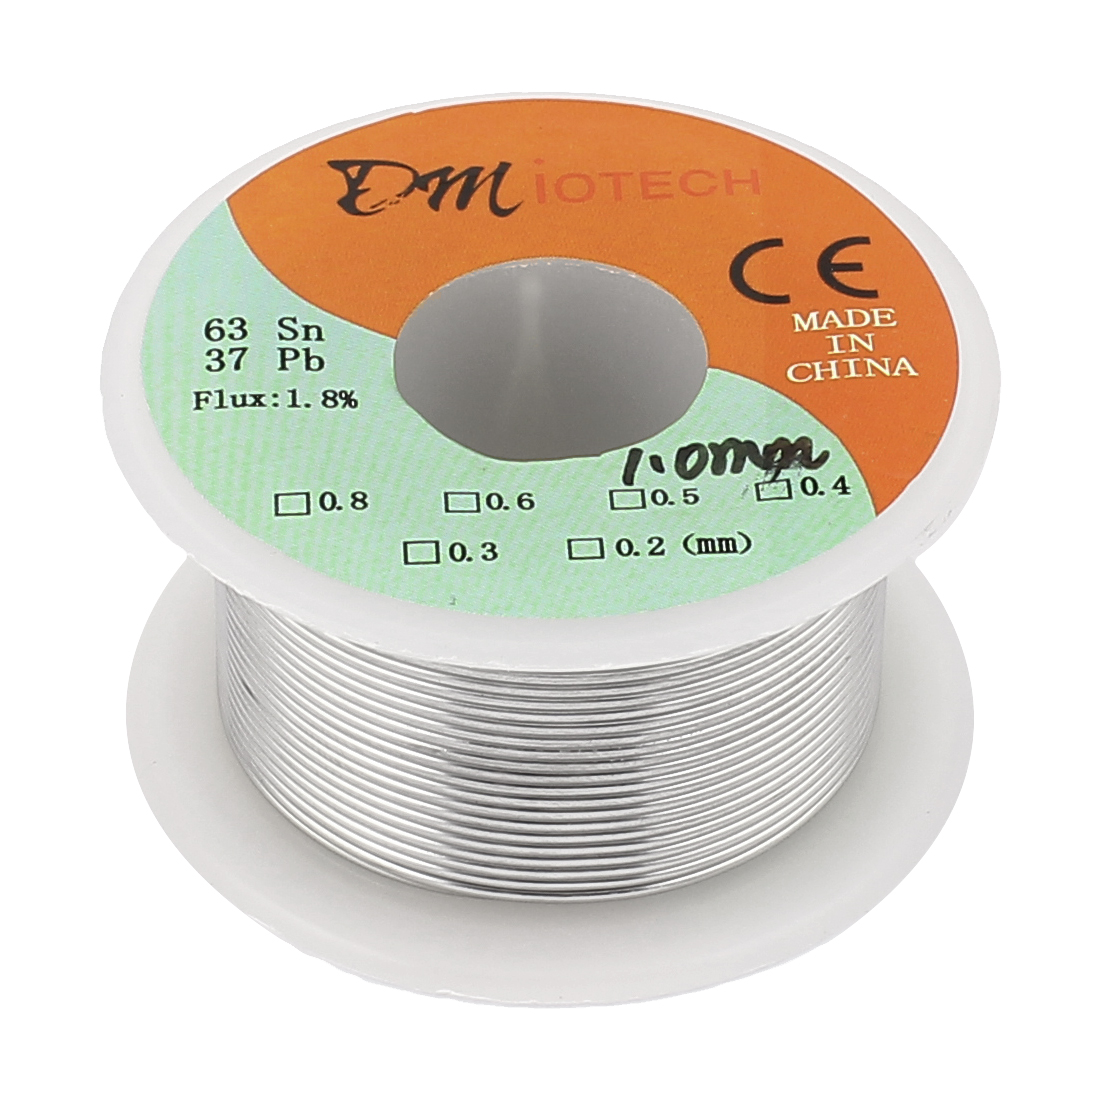 DMiotech 1mm 63/37 Rosin Core Flux 1.8% Tin Lead Roll Soldering Solder Wire Reel